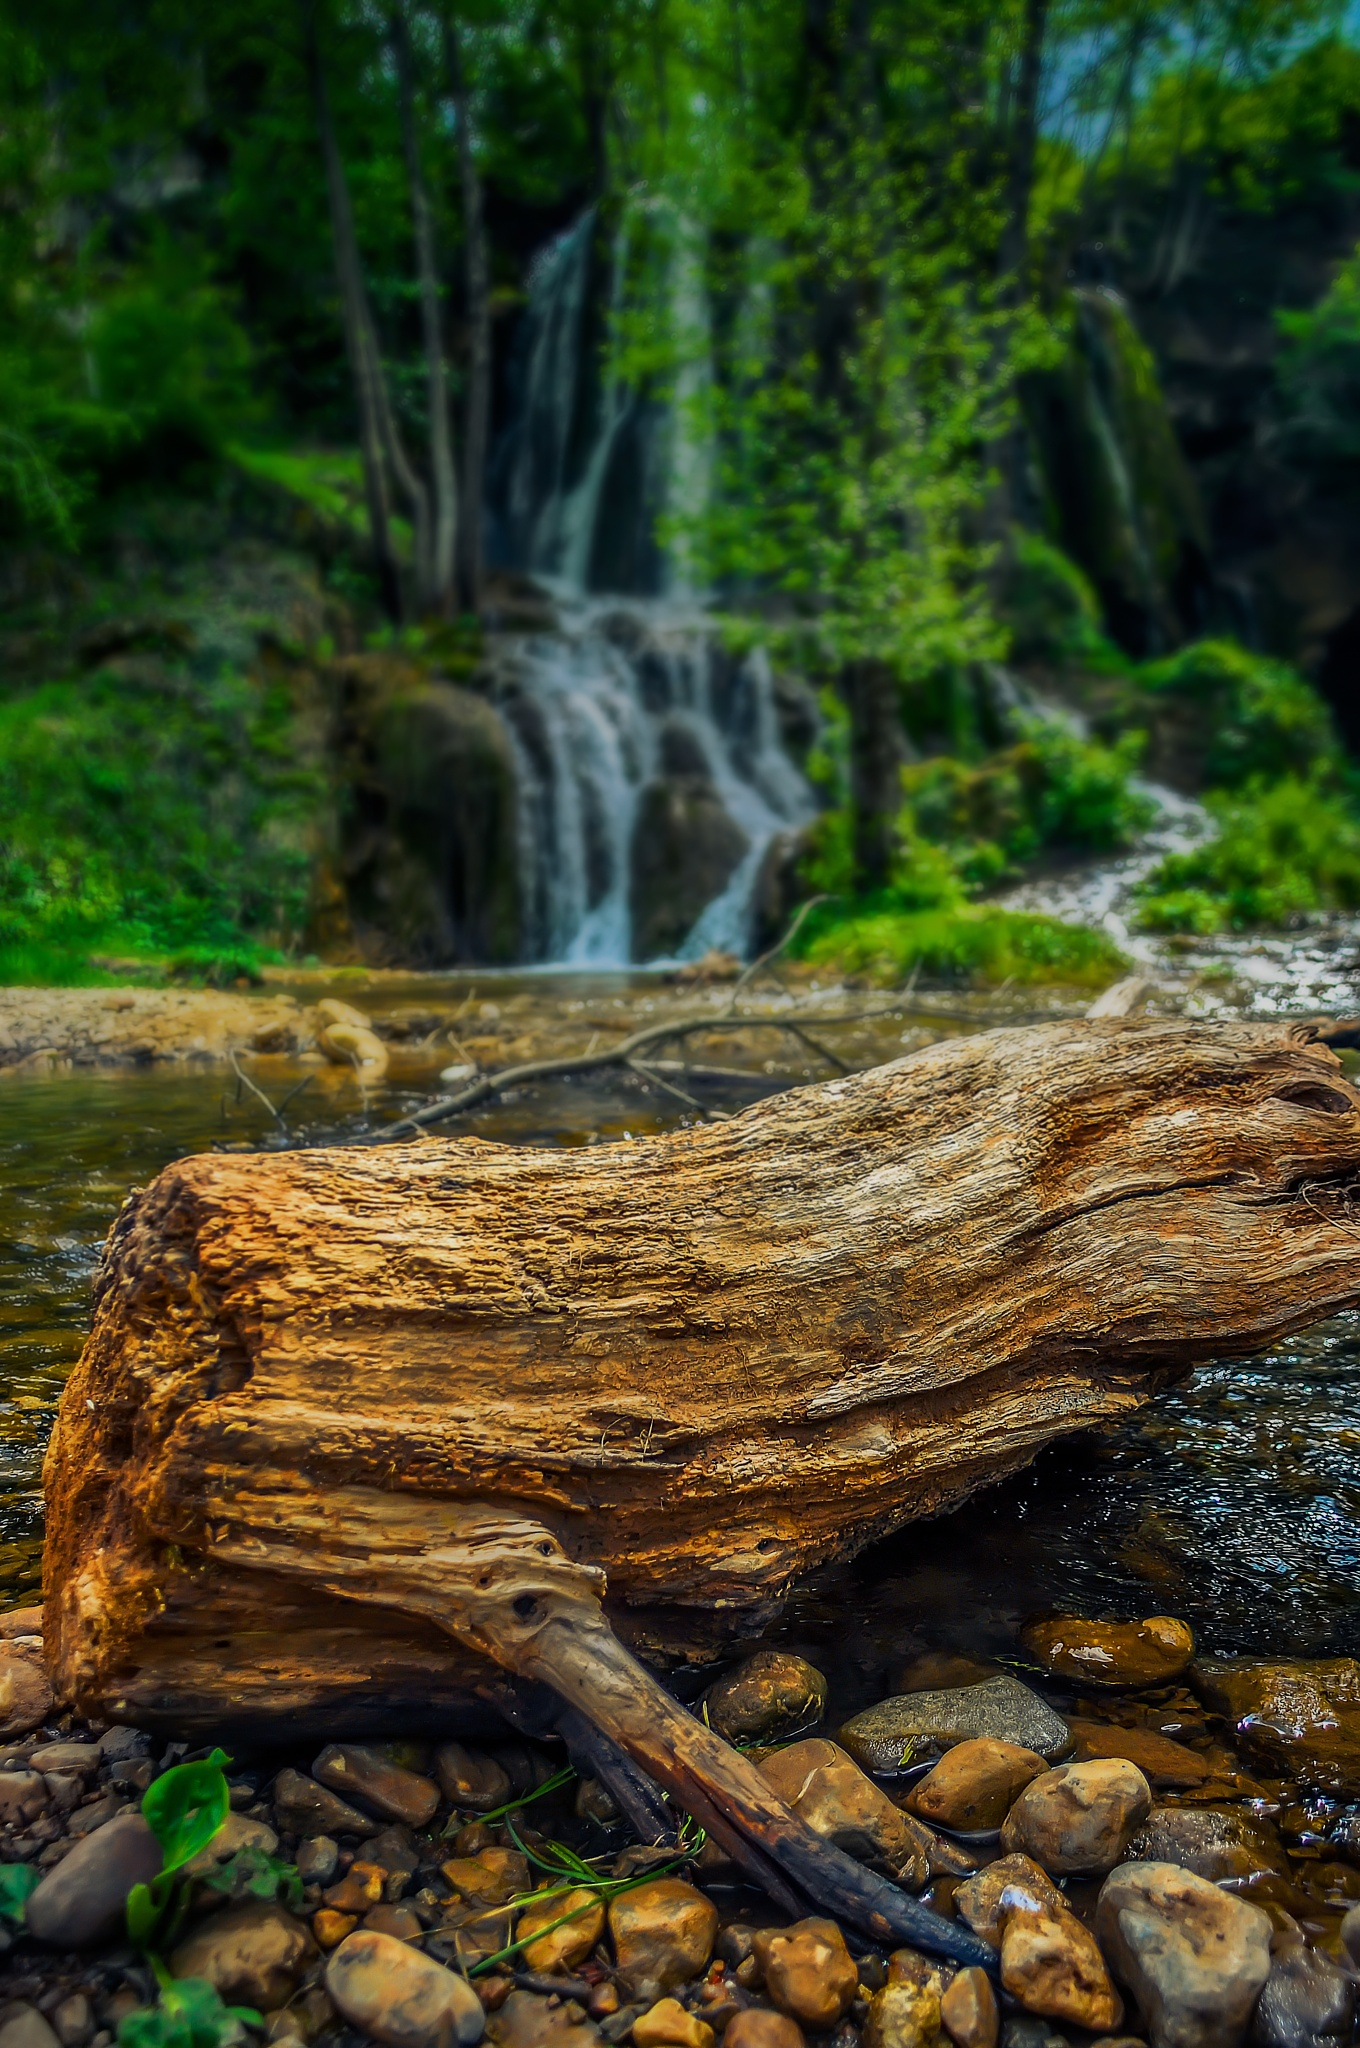 Waterfall in Deep forest by Milan Markovic Foto